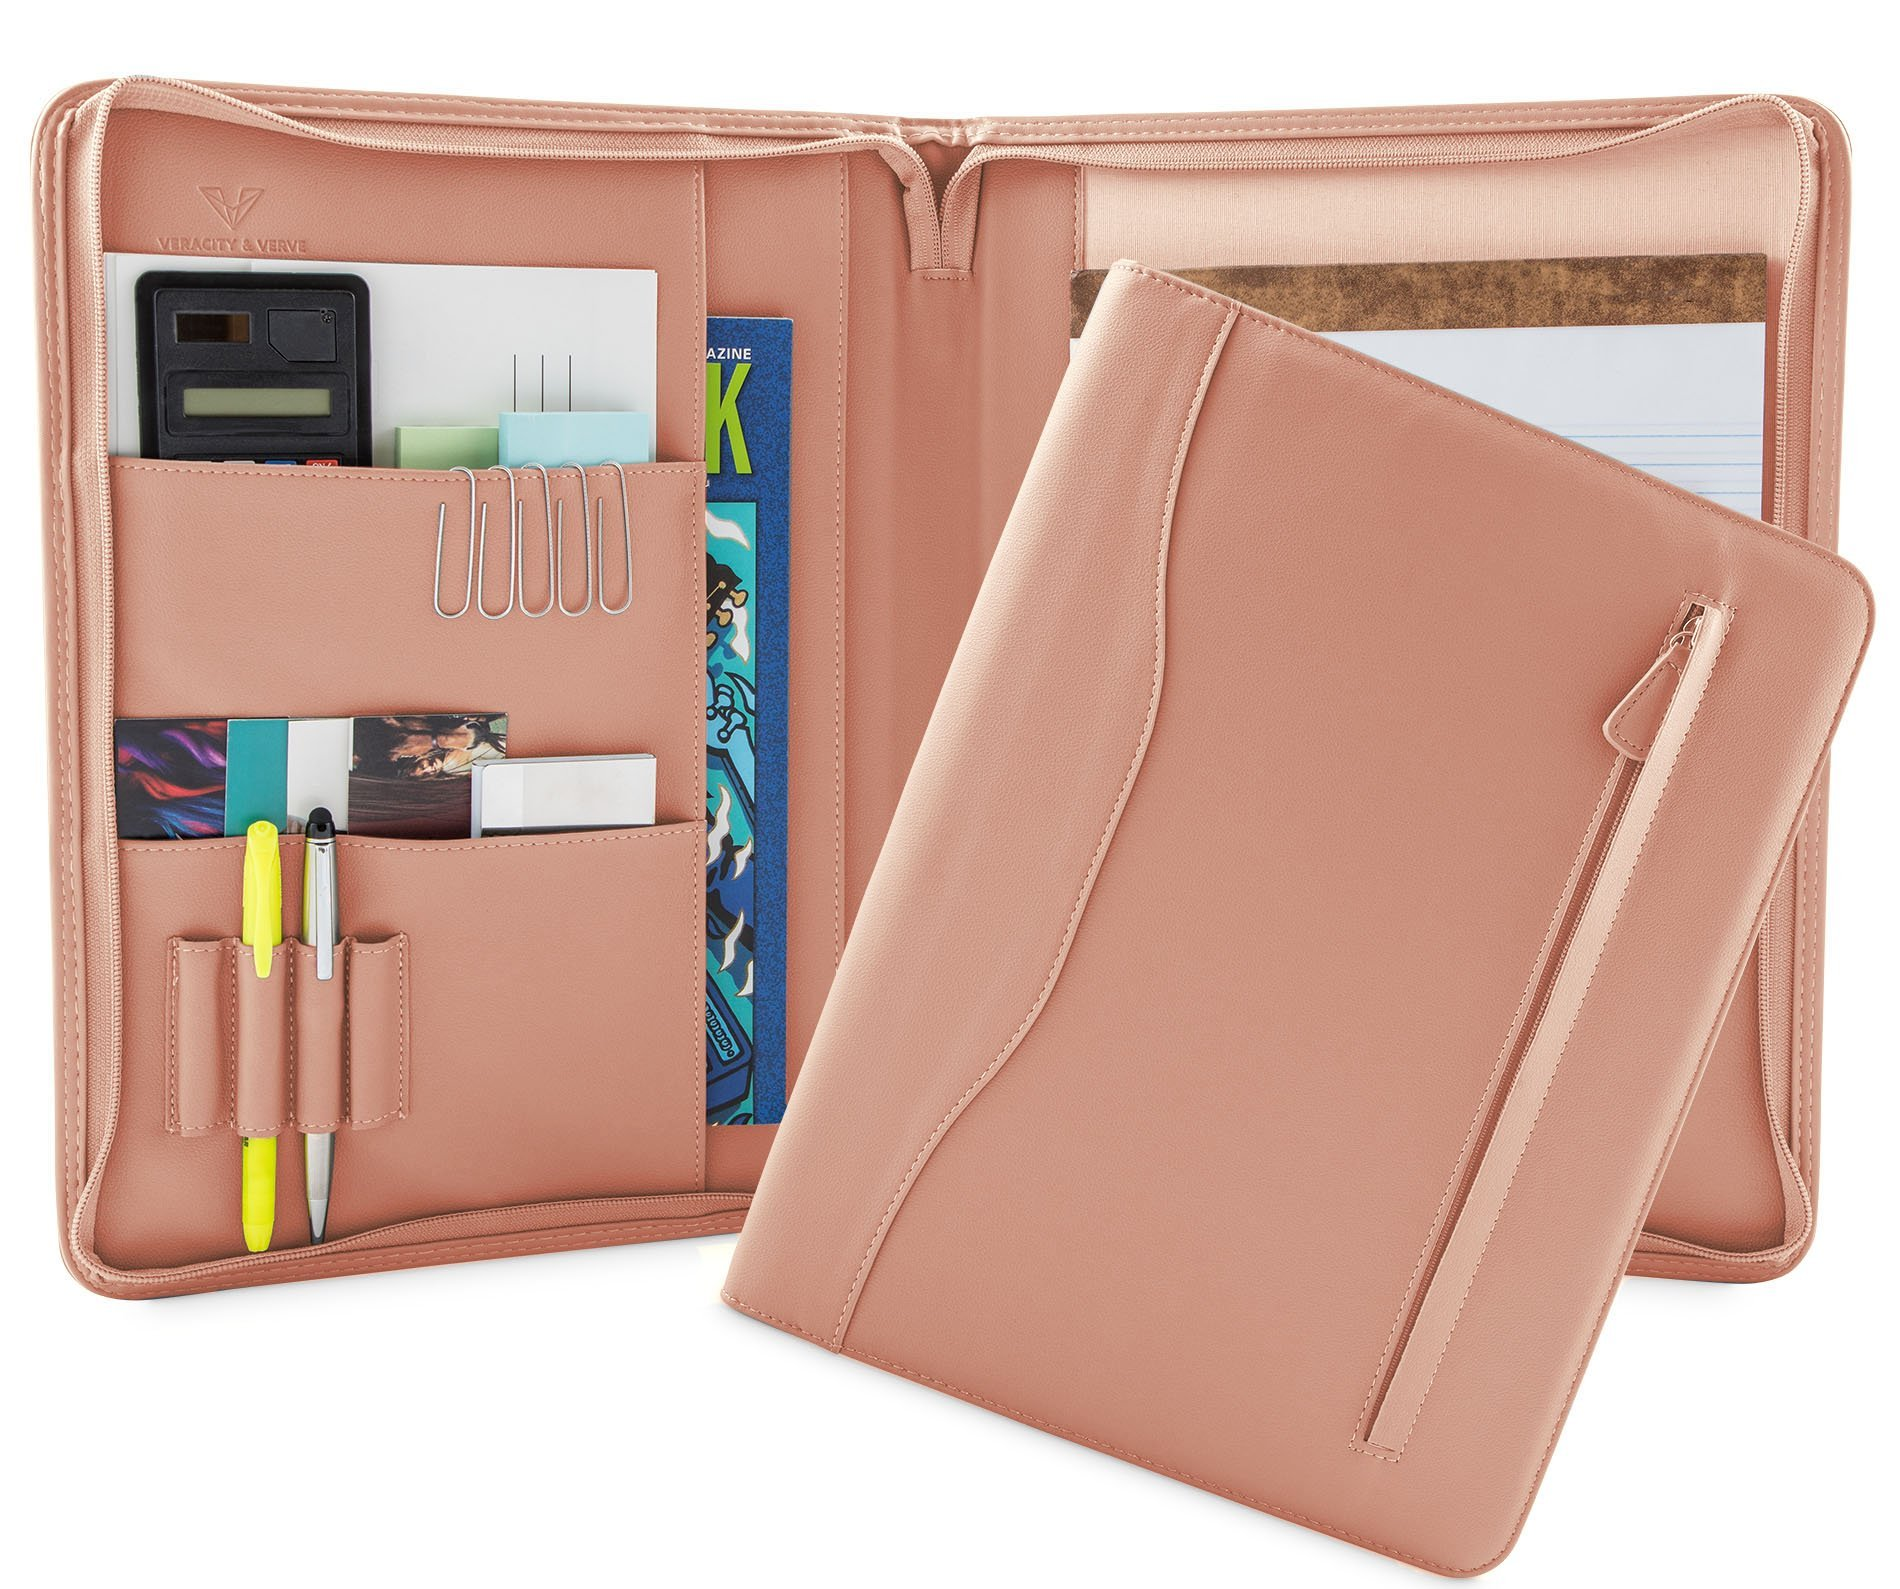 Professional PU Leather Padfolios Business Portfolio Document Organizer & Holder Padfolio Case for Notepads,Pens,Phone,Documents,Business Cards Blush Pink